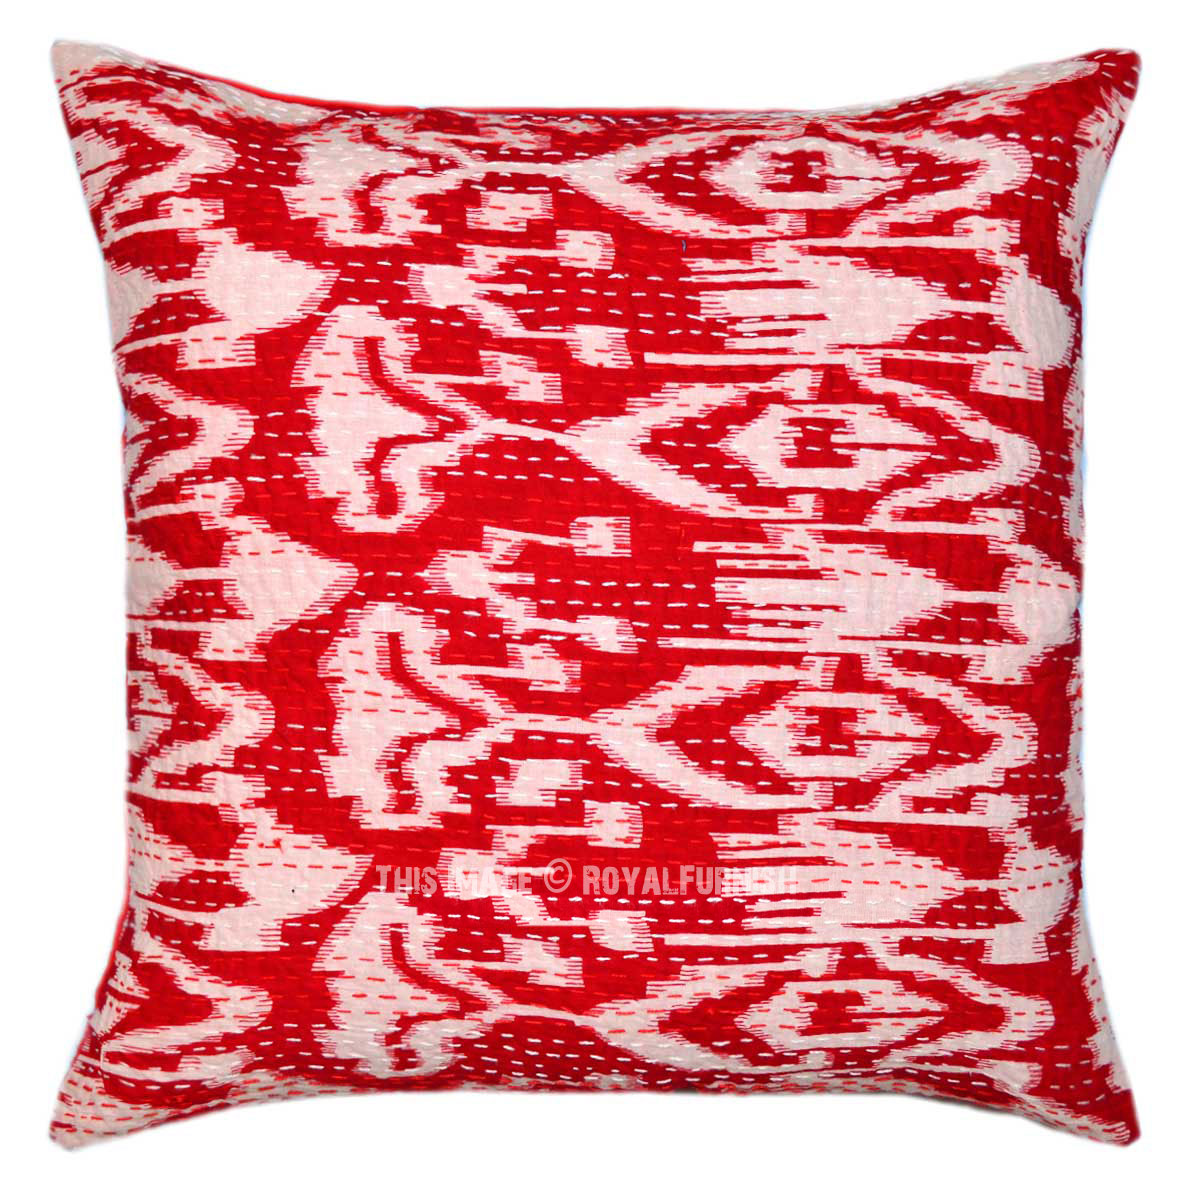 Decorative Pillow Cover Mcqueen Red Multi : 20X20 Red Multi ZigZag Decorative IKat Kantha Throw Pillow Cover - RoyalFurnish.com